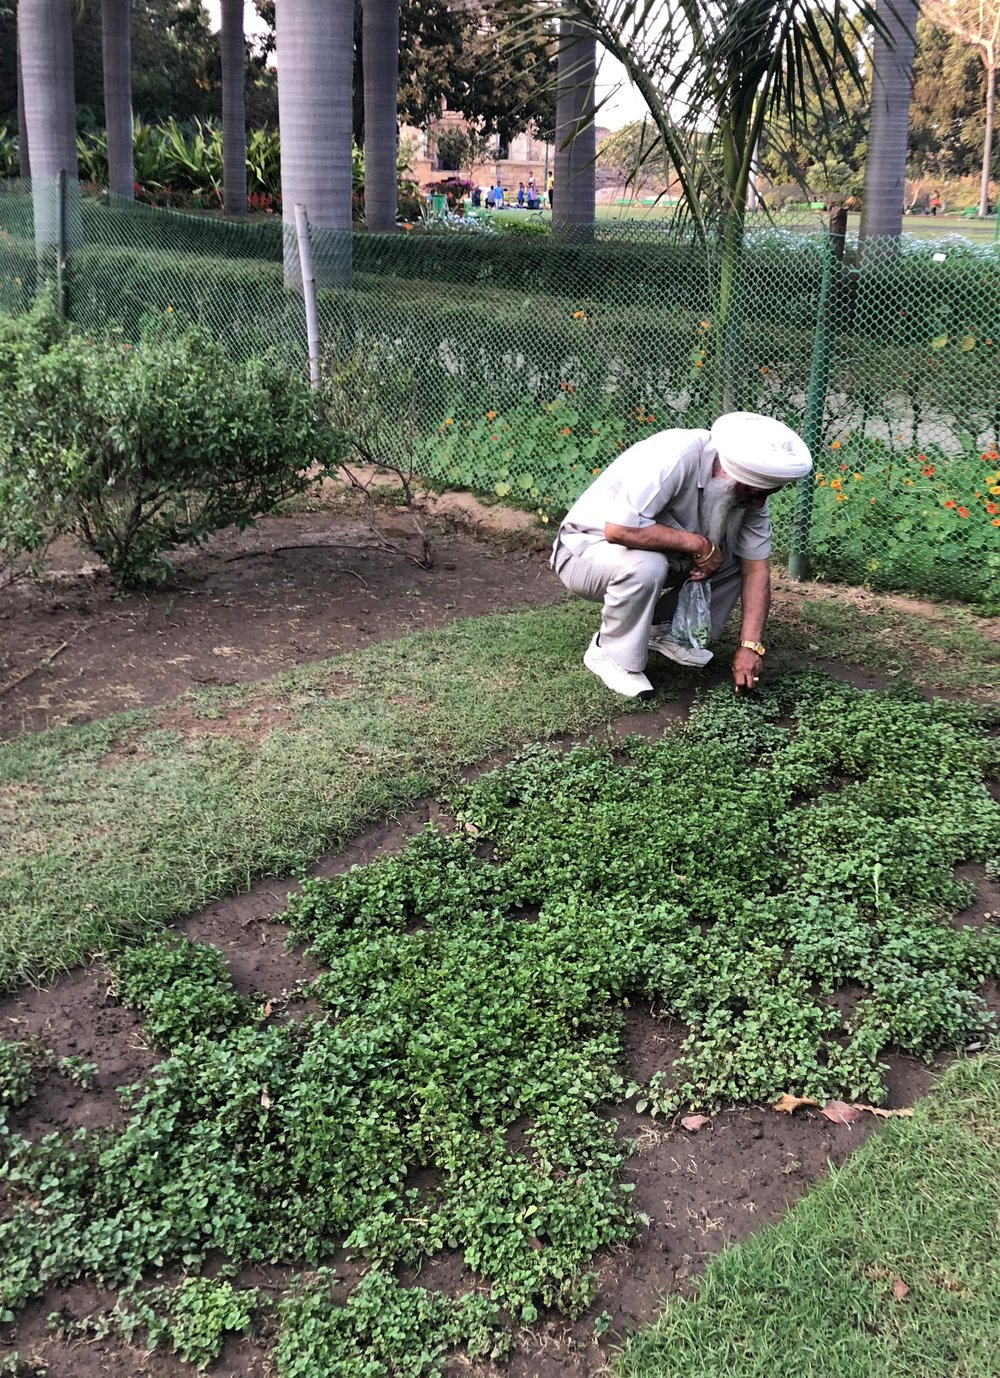 Picking basil in a community garden in Delhi